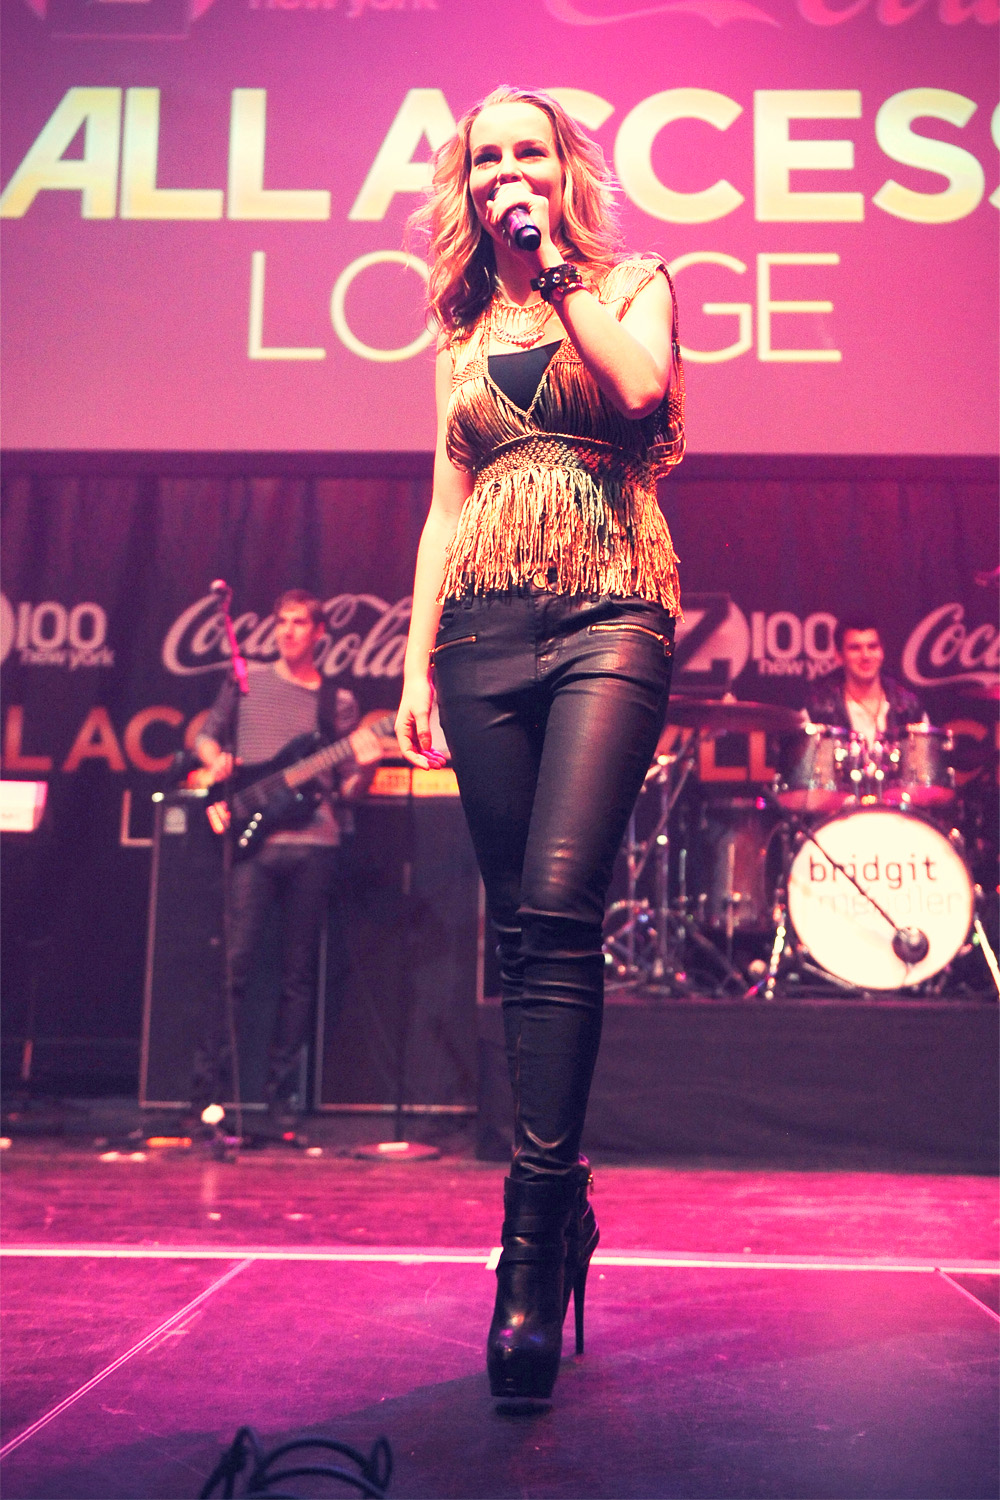 Bridgit Mendler performs at Z100 & Coca-Cola All Access Lounge